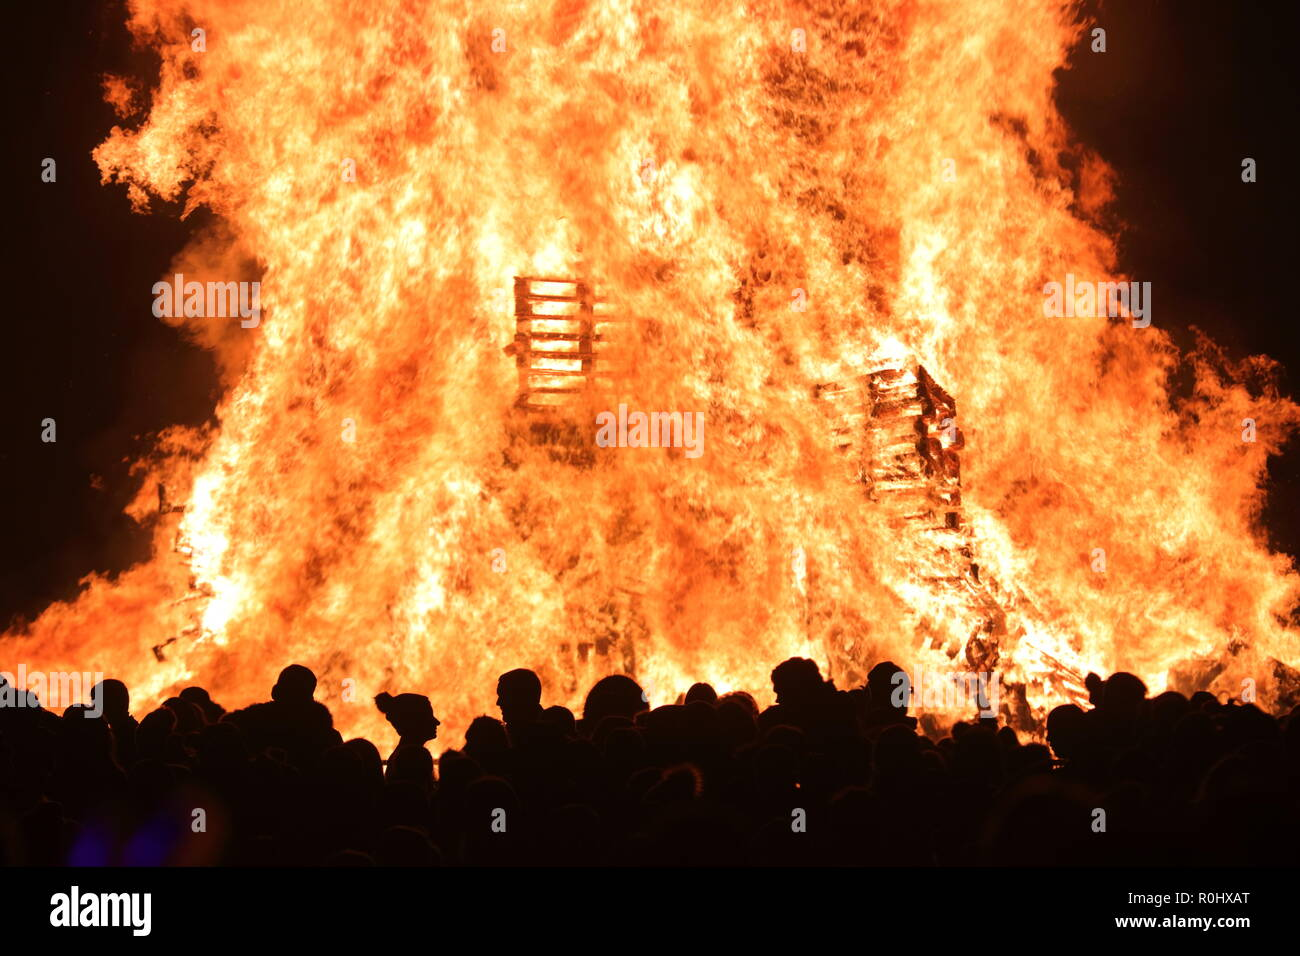 Leeds, West Yorkshire. 5th November 2018. Bonfire celebrations at Springhead Park in Rothwell. Credit: Yorkshire Pics/Alamy Live News - Stock Image